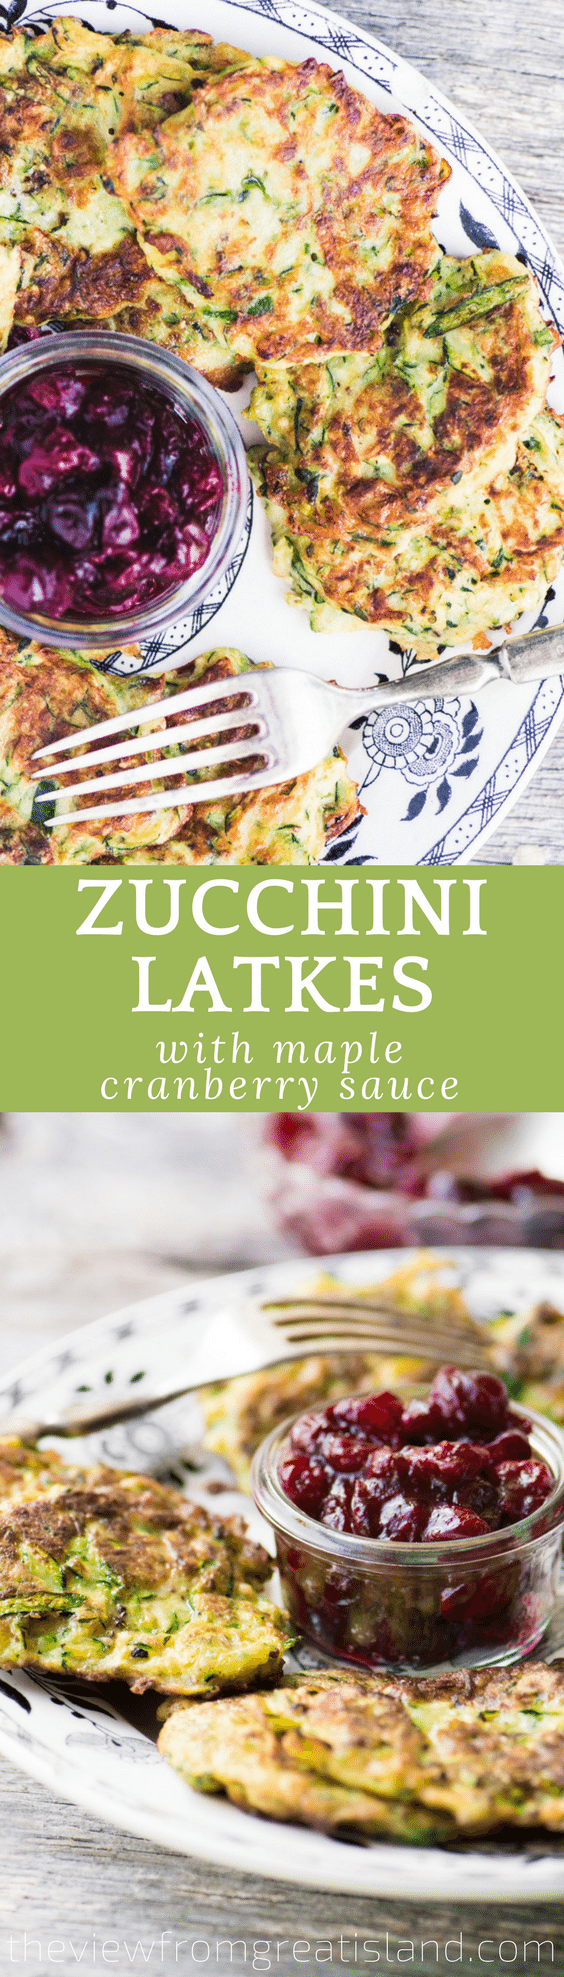 Zucchini Latkes with Maple Cranberry Sauce pin